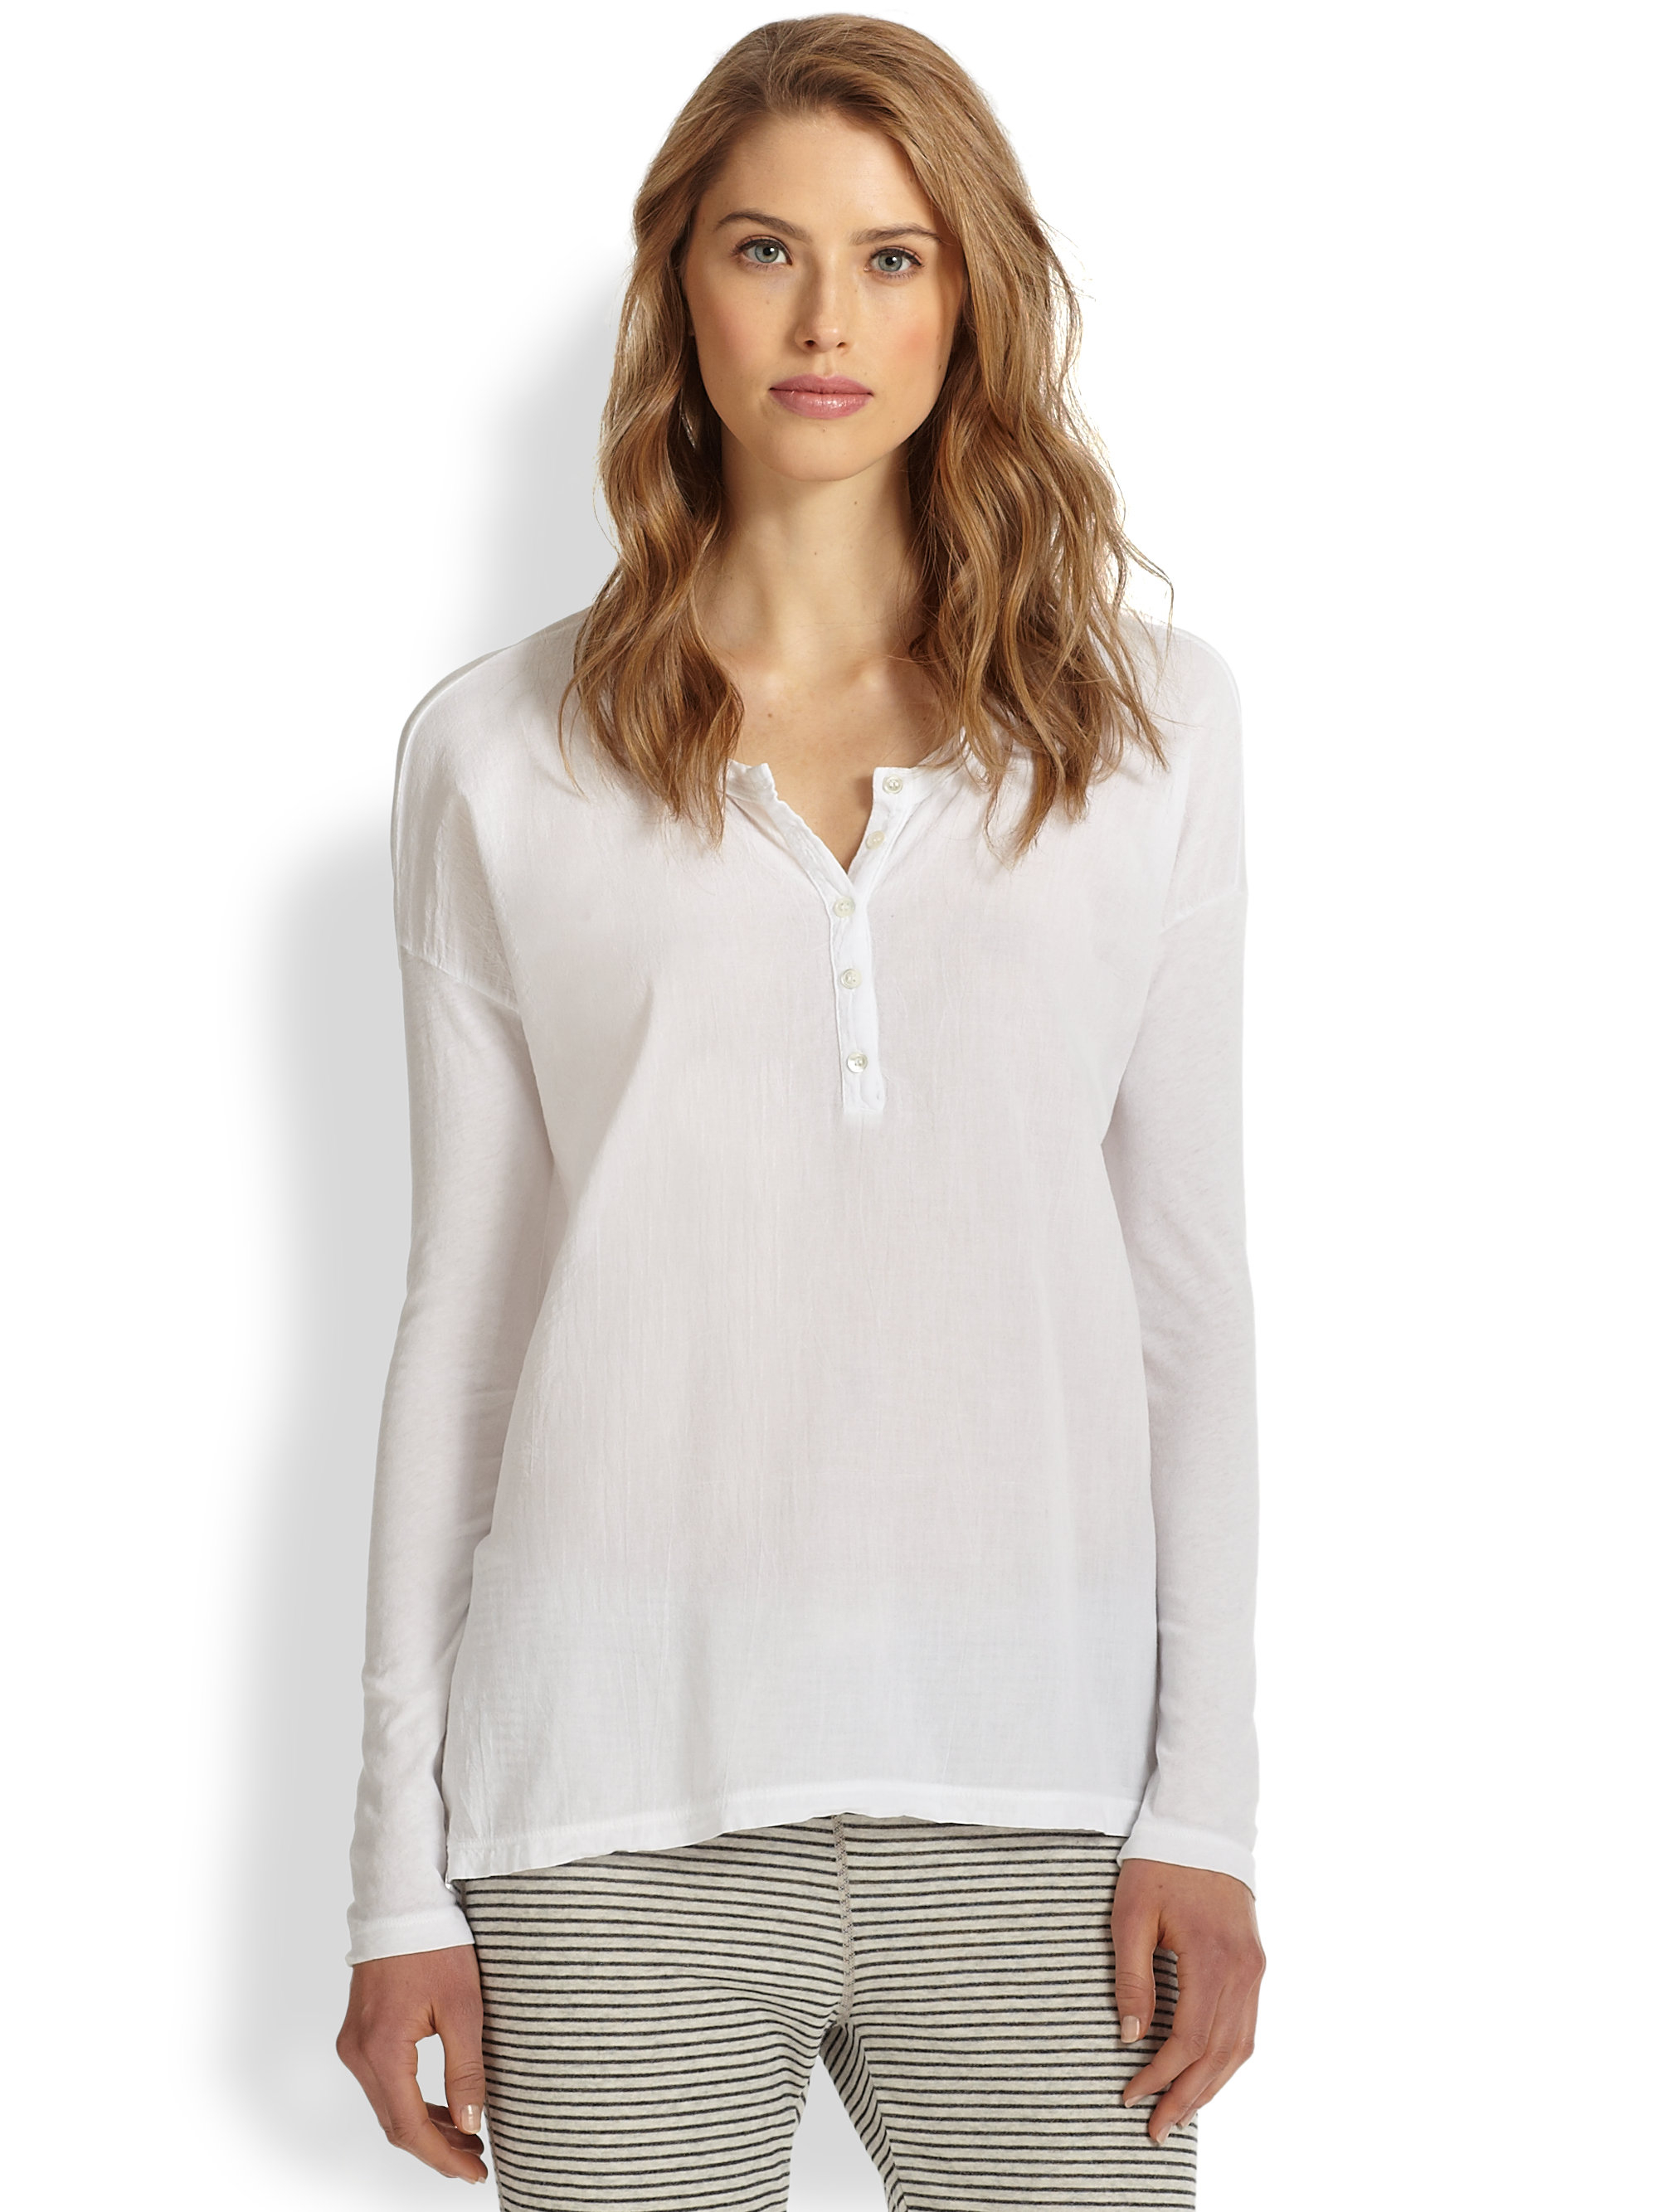 Lyst james perse boxyfit cotton jersey henley tee in white for James perse henley shirt